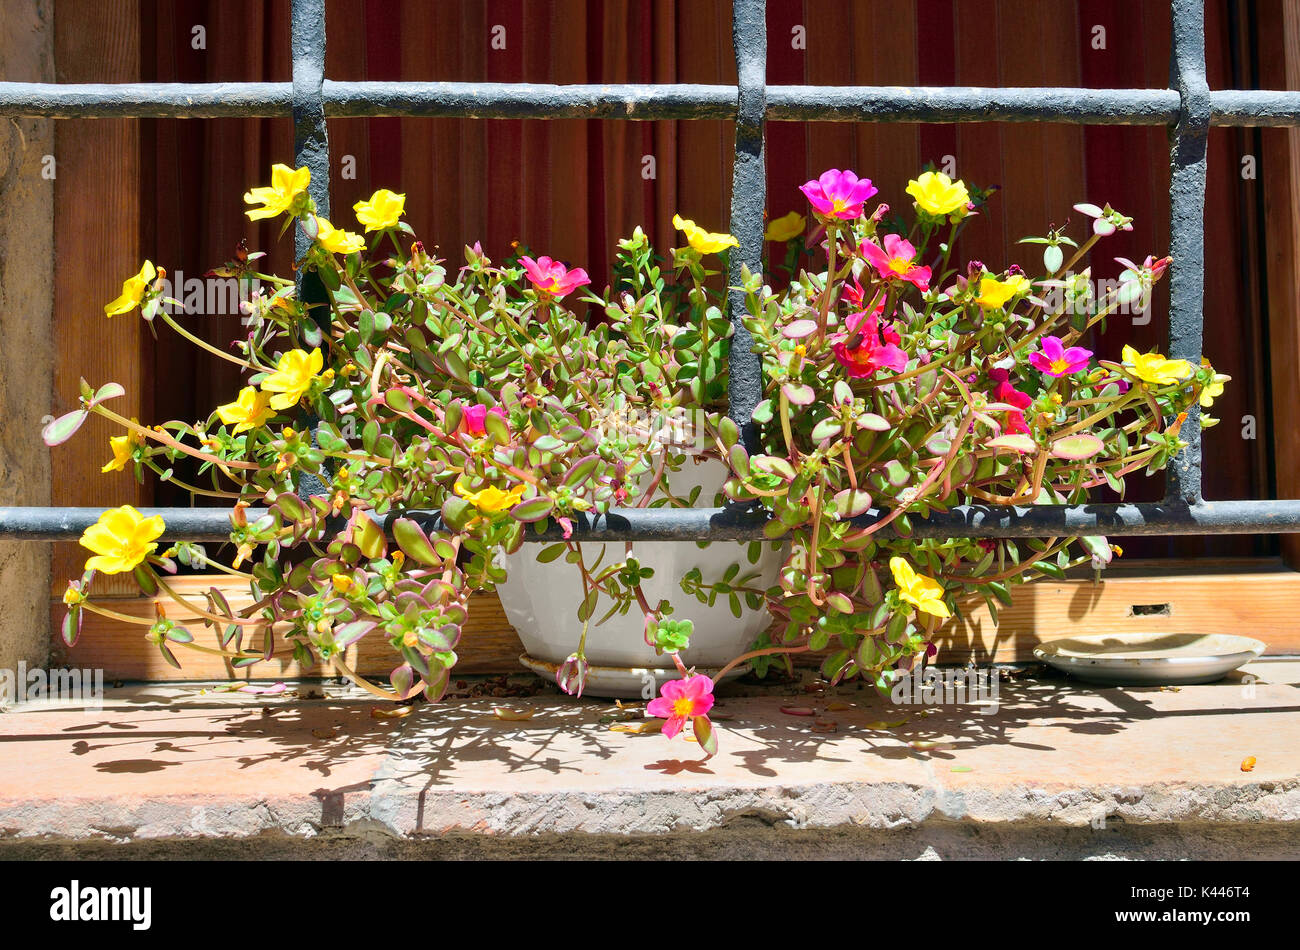 Portulaca oleracea (Popular known as Verdolaga). Beautiful and colorful plant with pink and yellow flowers, over the window sill. Rural environment. - Stock Image